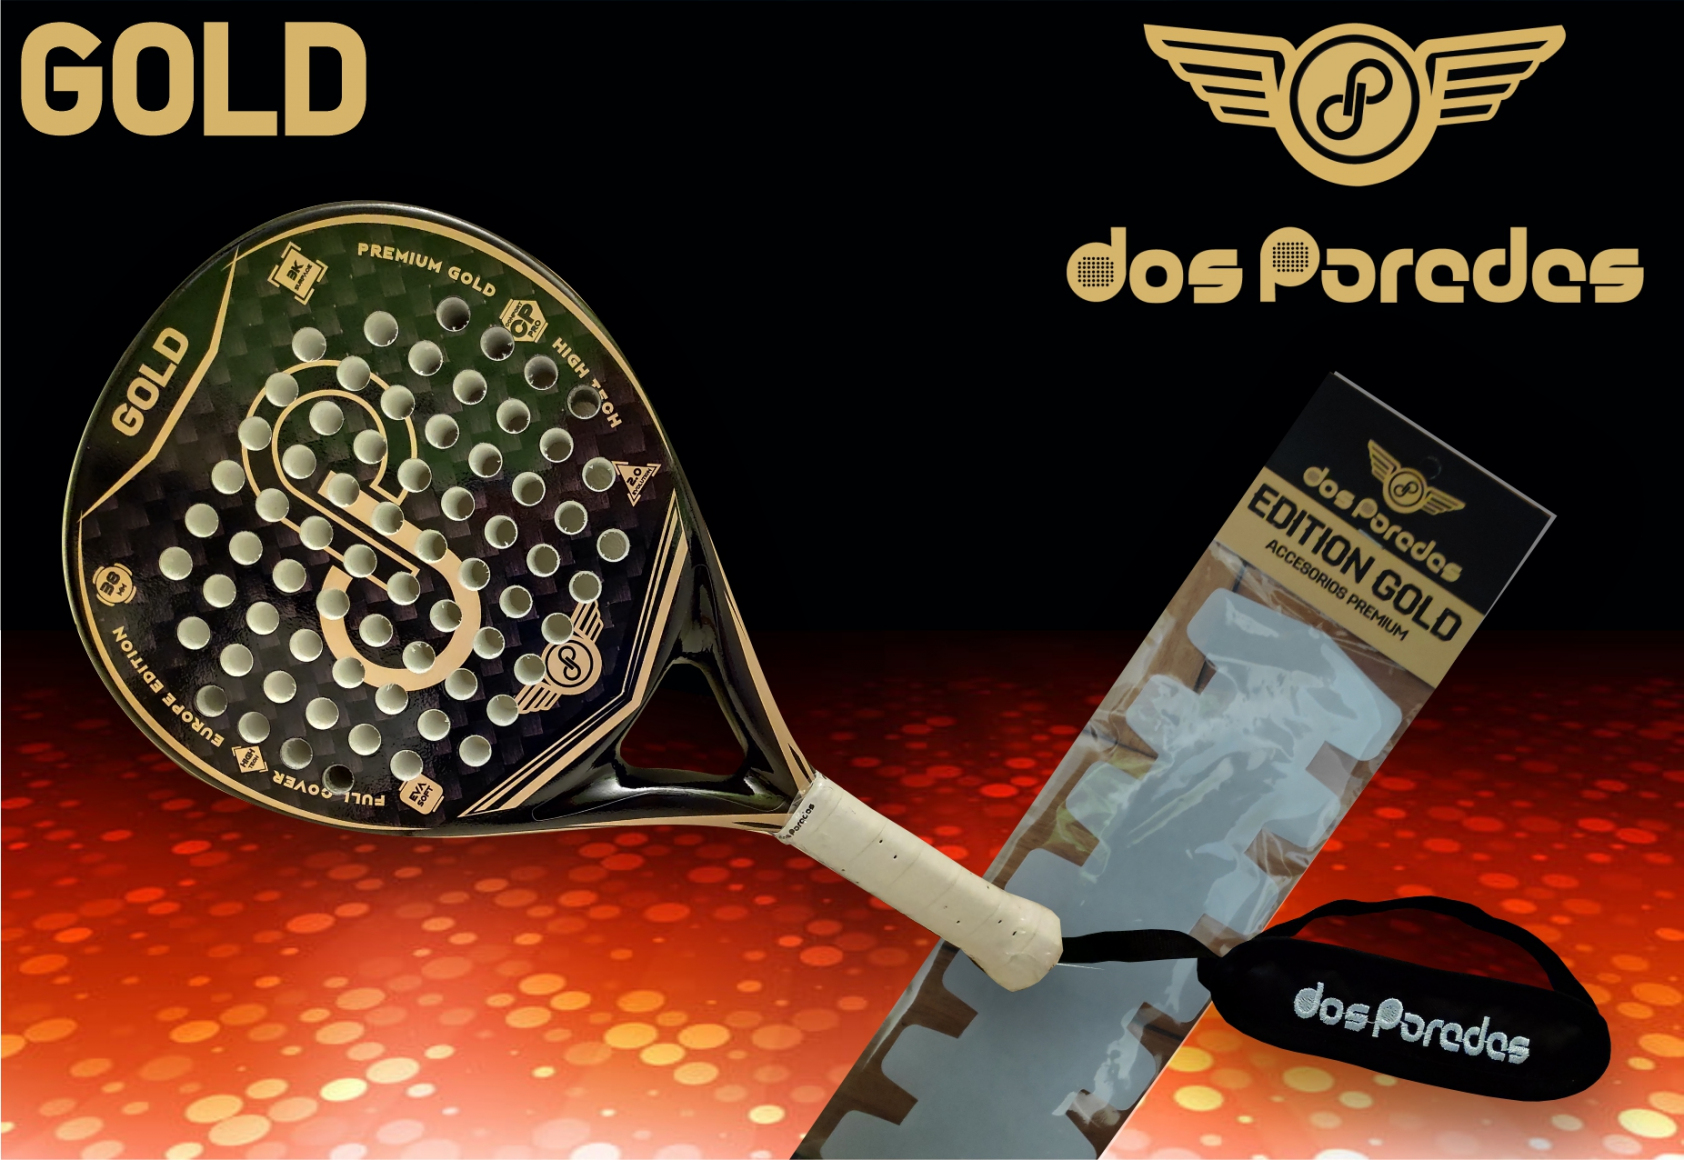 gallery/dos paredes gold4